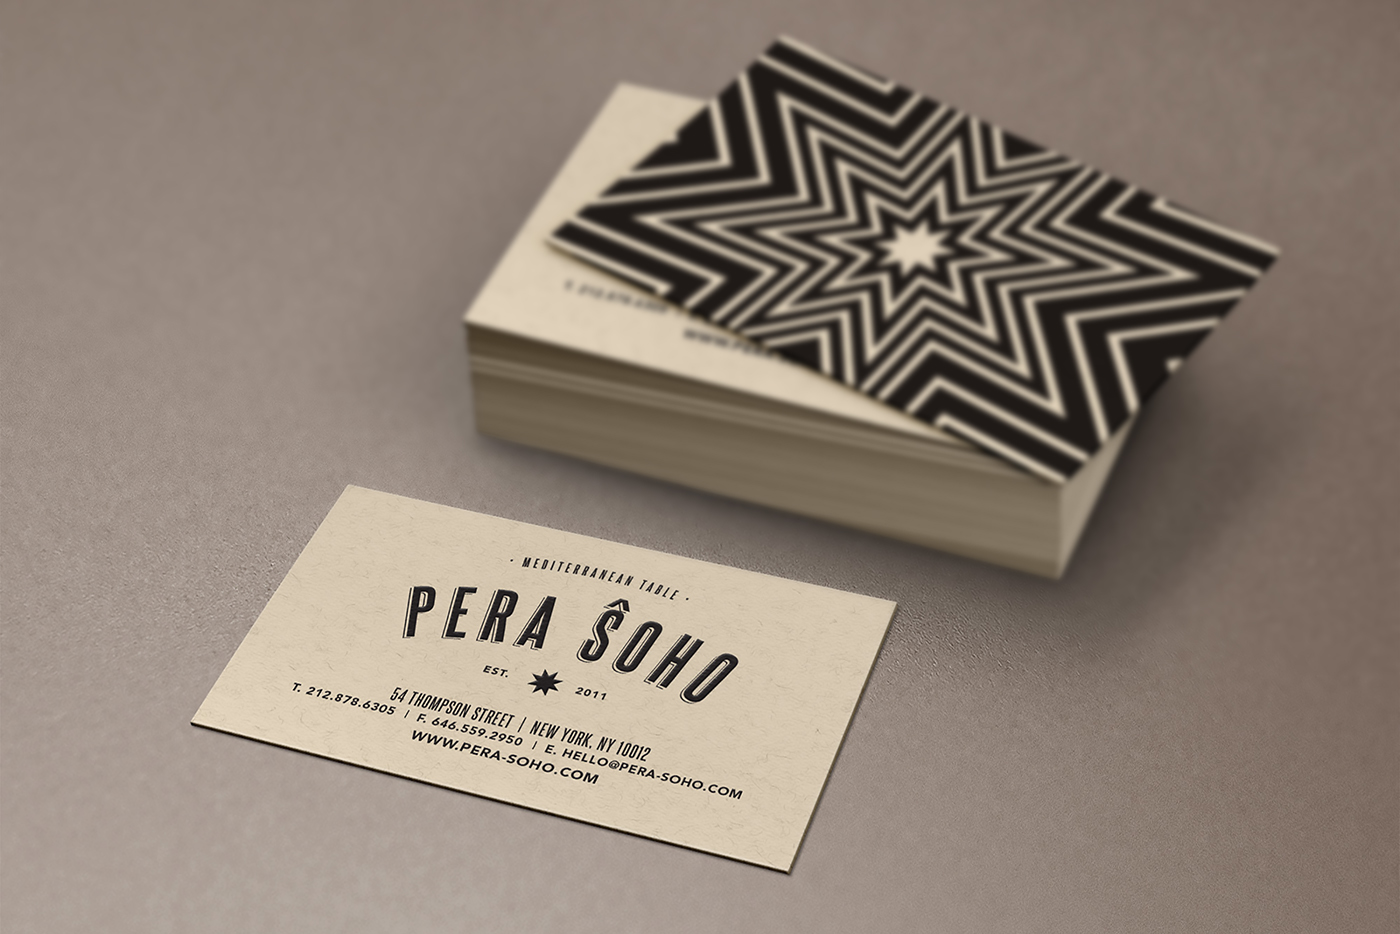 Passion & Poison Studio, P&P Studio, Branding, Creative, Agency, New York City, Restaurant Design, Pera Soho